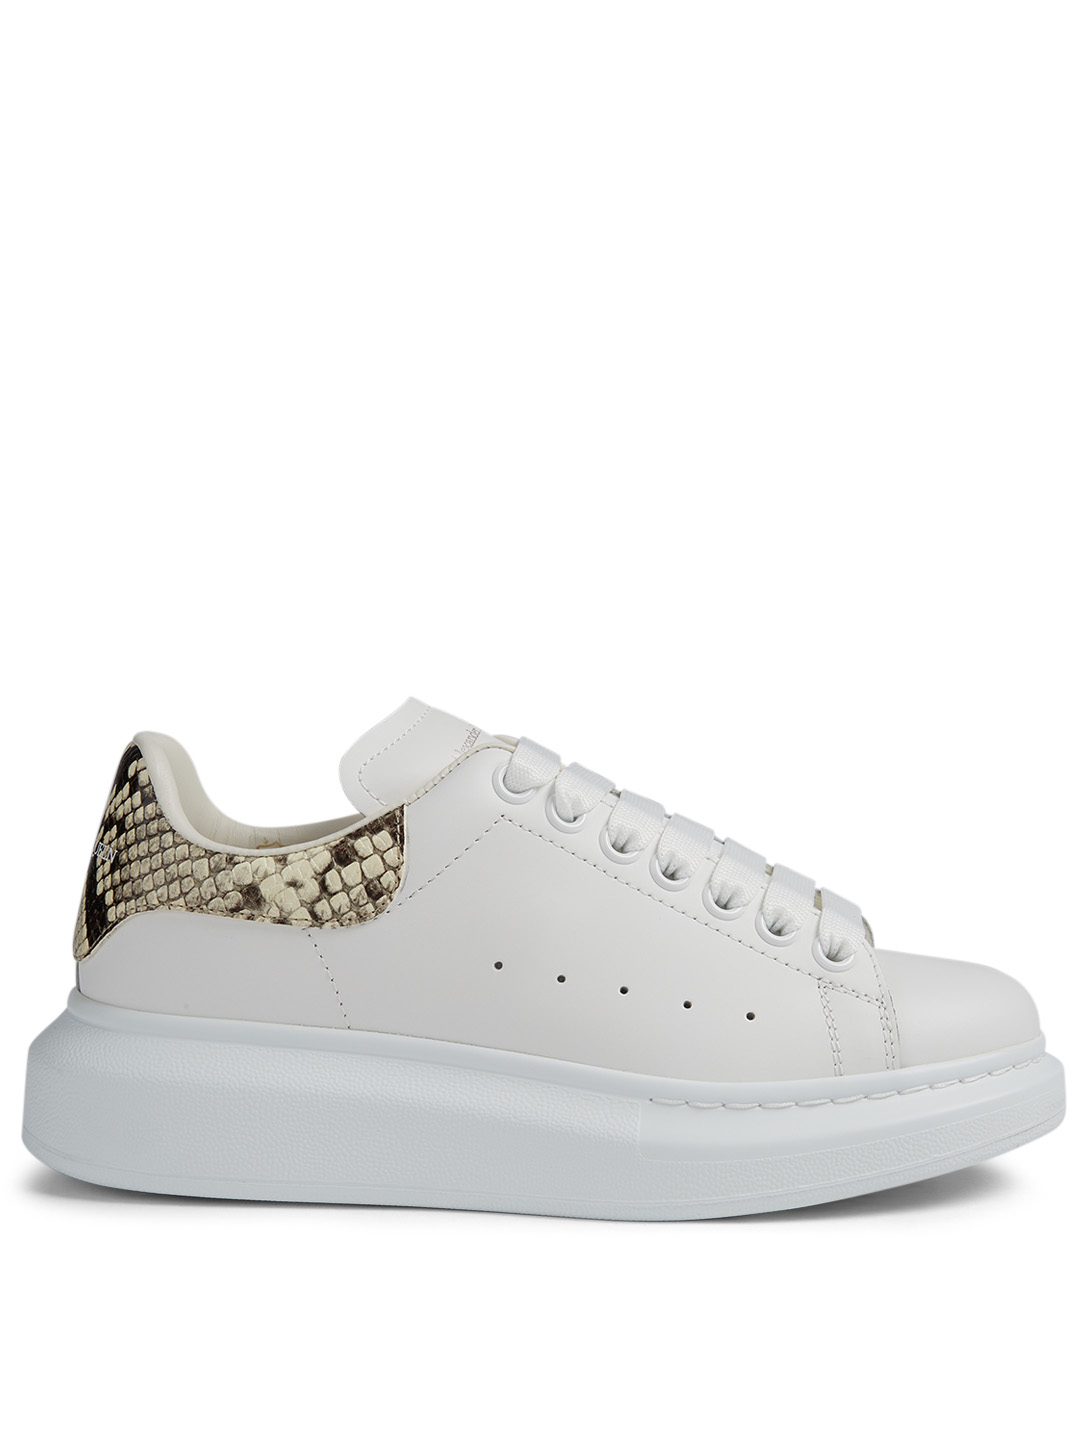 ALEXANDER MCQUEEN Oversized Leather Sneakers With Snake Print Patch Women's White